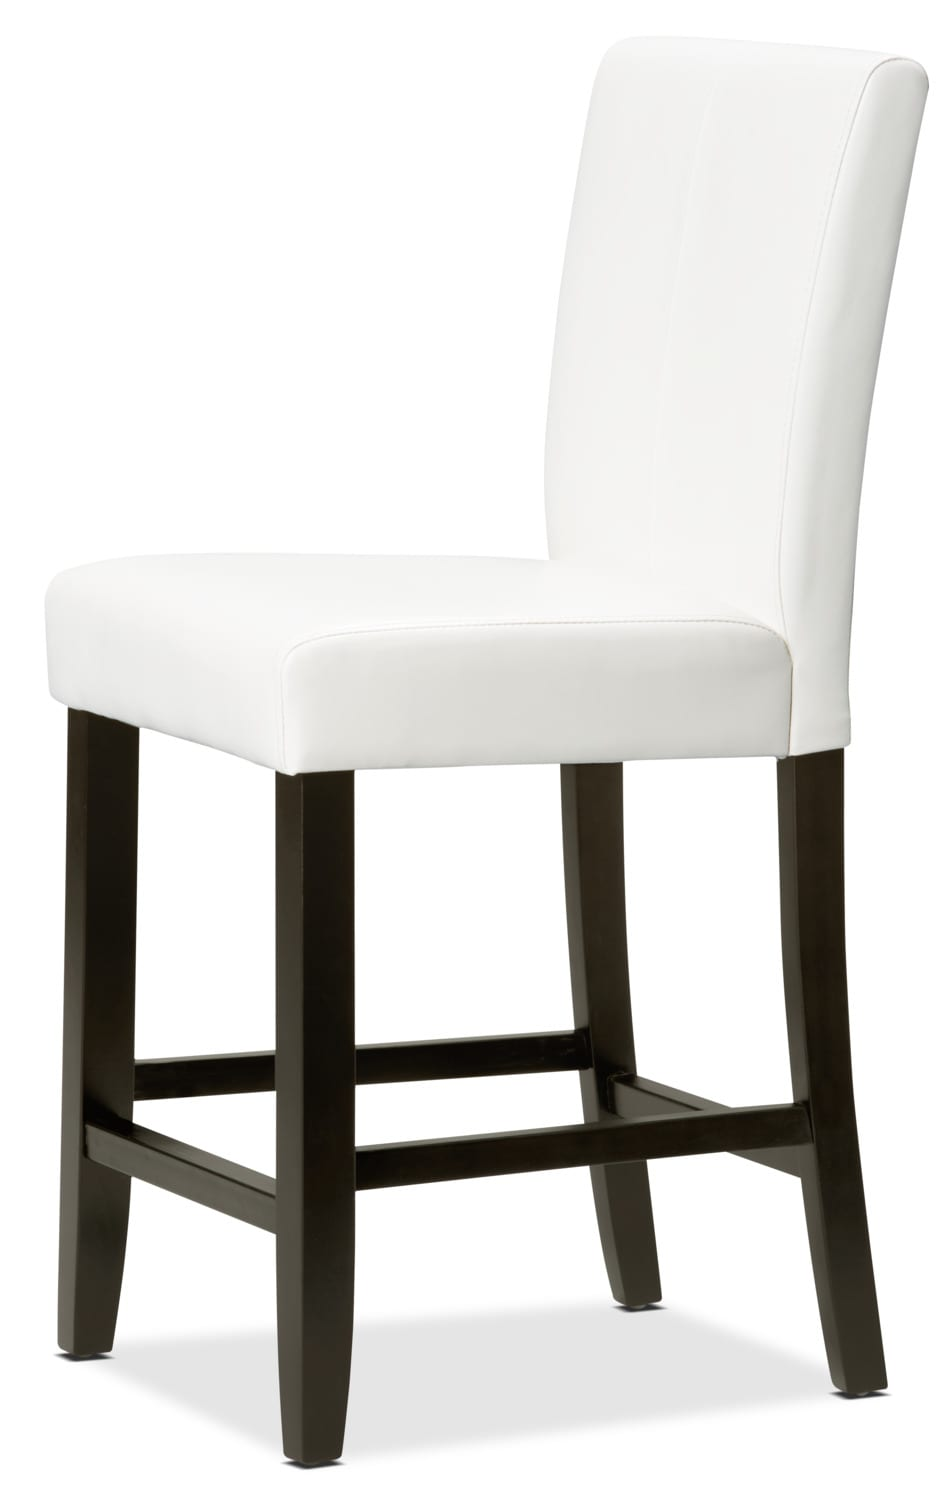 White Counter Height Dining Chair The Brick : 500114 from www.thebrick.com size 951 x 1500 jpeg 85kB